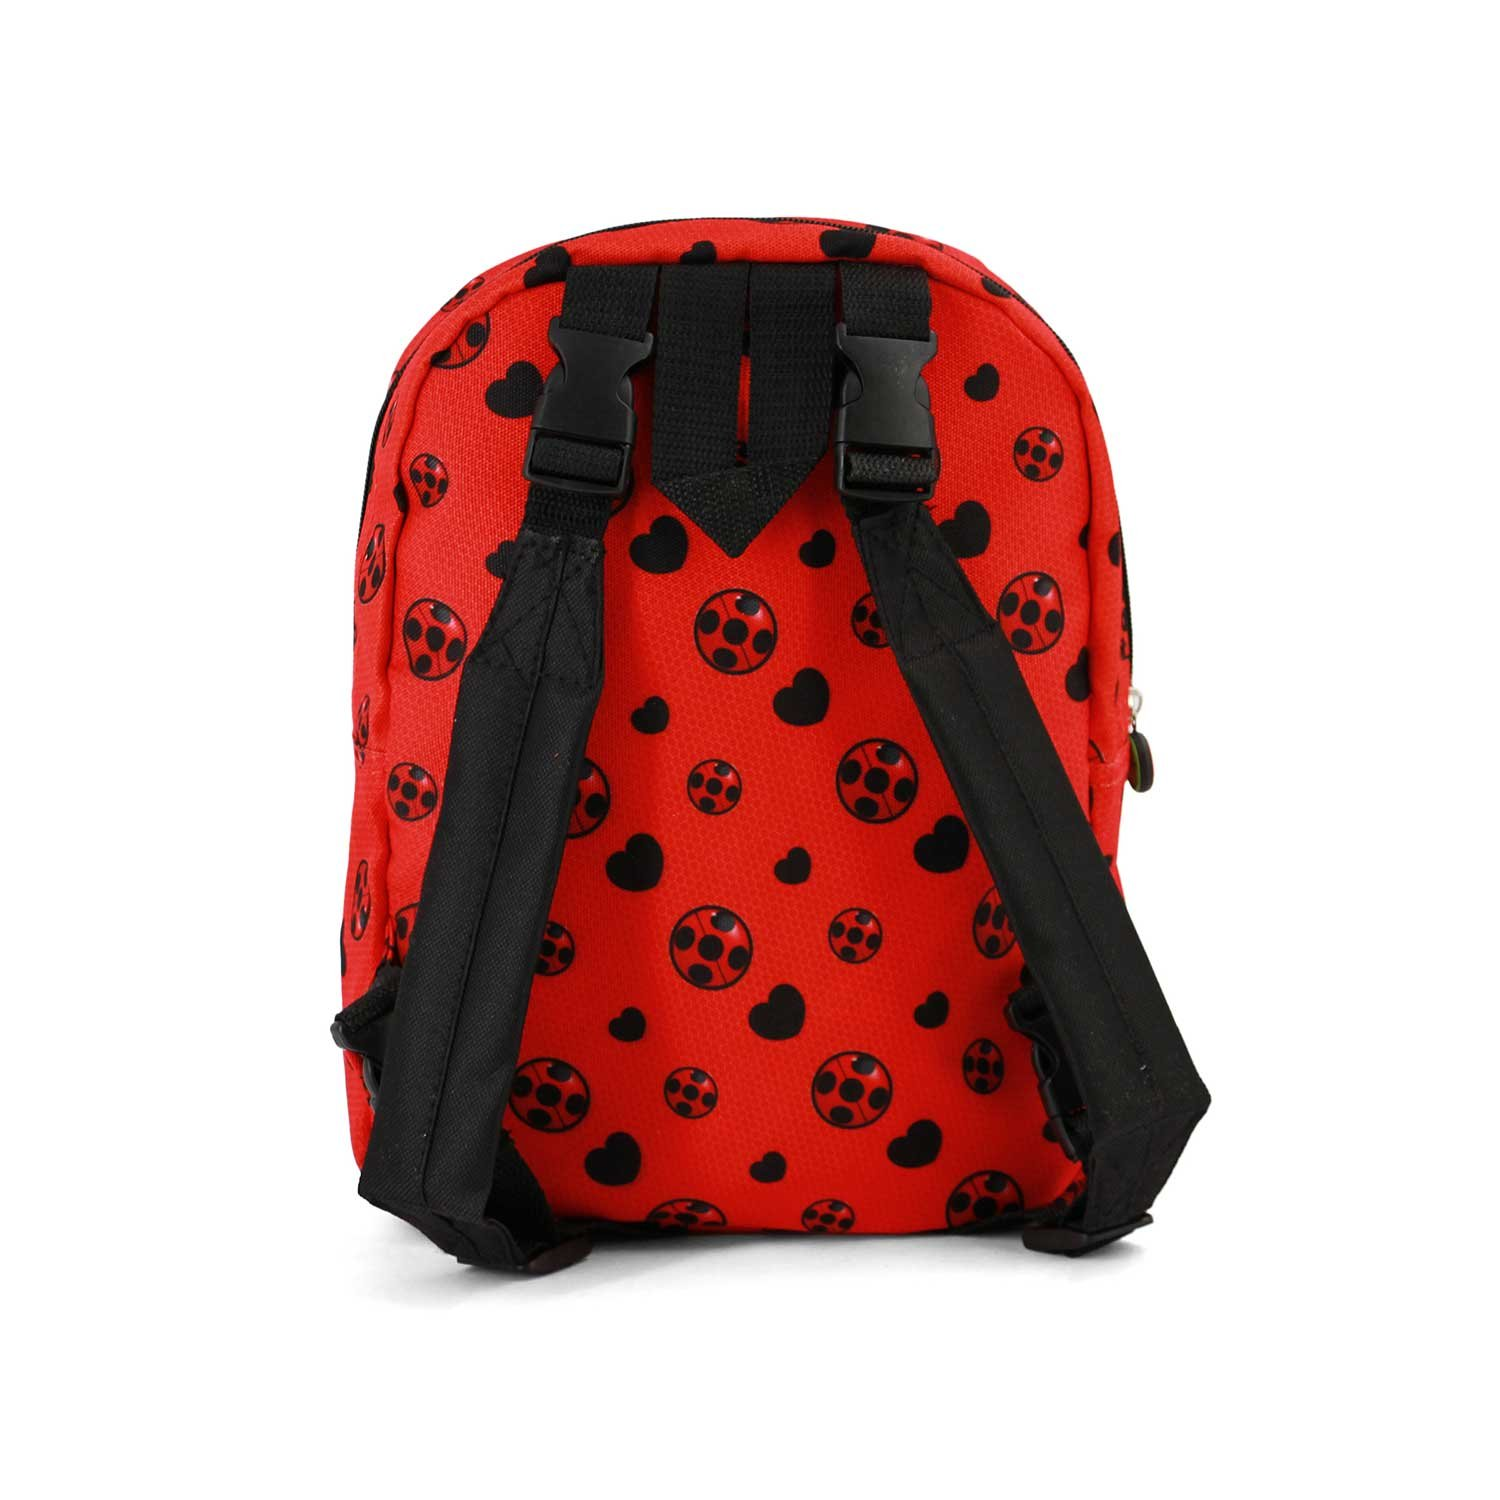 Karactermania Ladybug Split - Mochila infantil reversible, 31 cm, Multicolor: Amazon.es: Equipaje